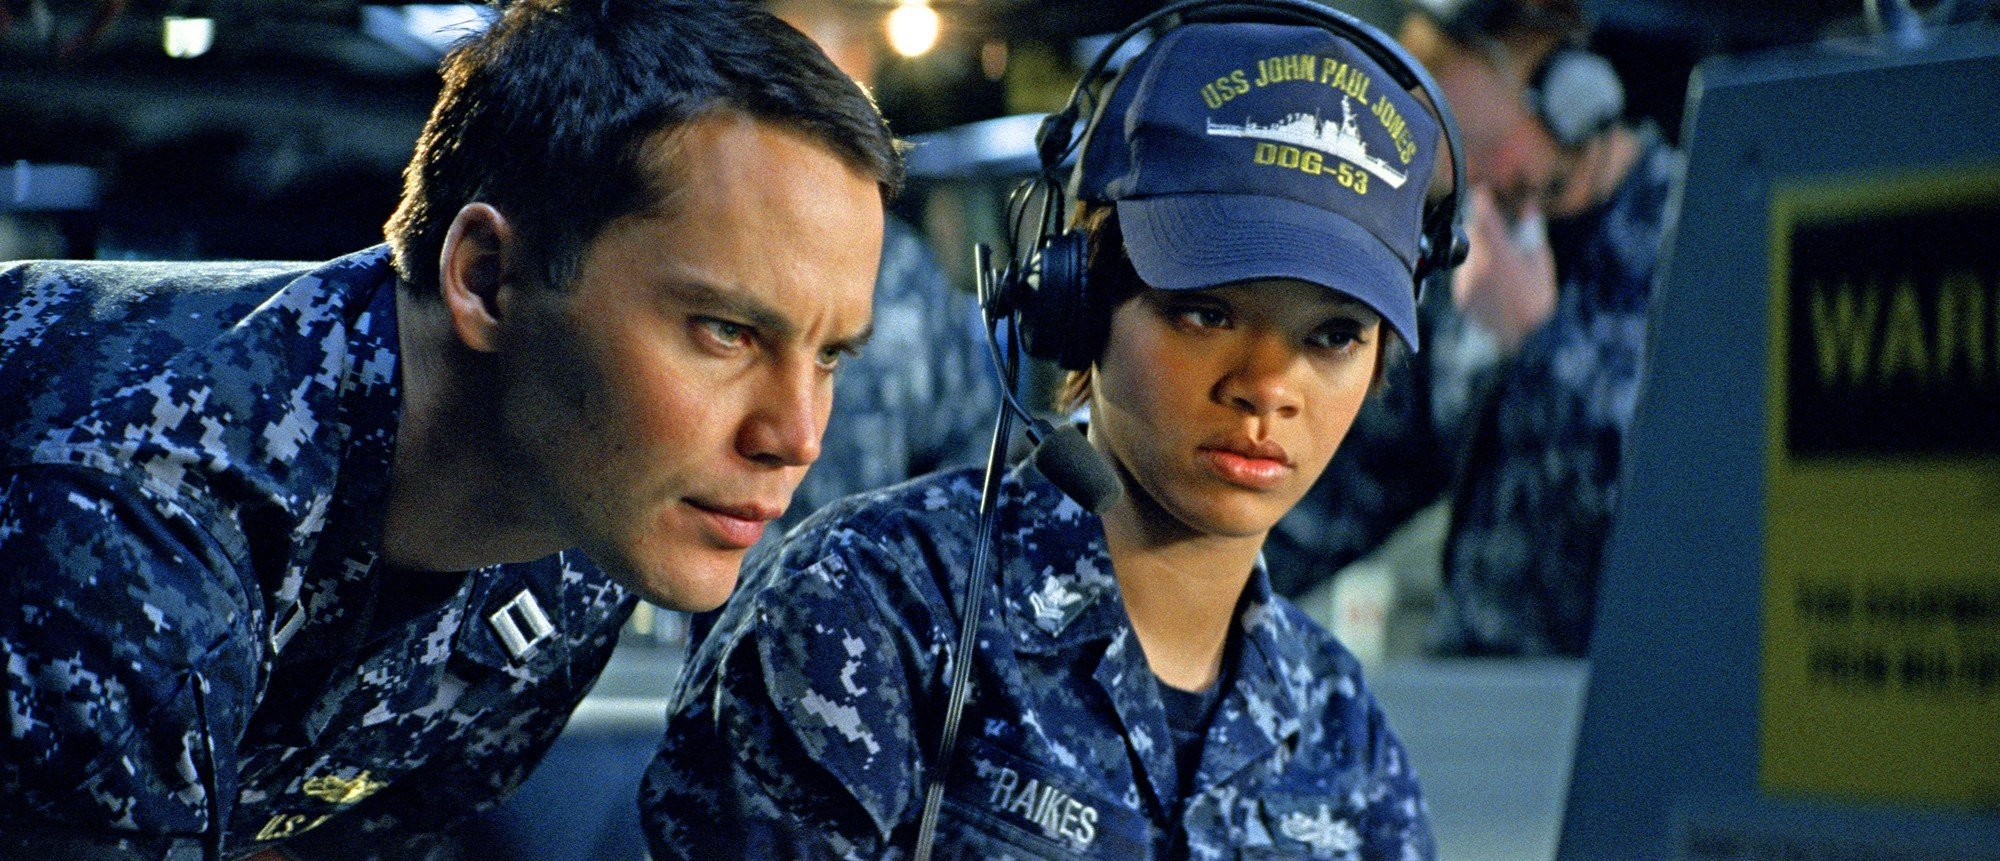 Taylor Kitsch stars as Alex Hopper and Rihanna stars as Raikes in Universal Pictures' Battleship (2012)